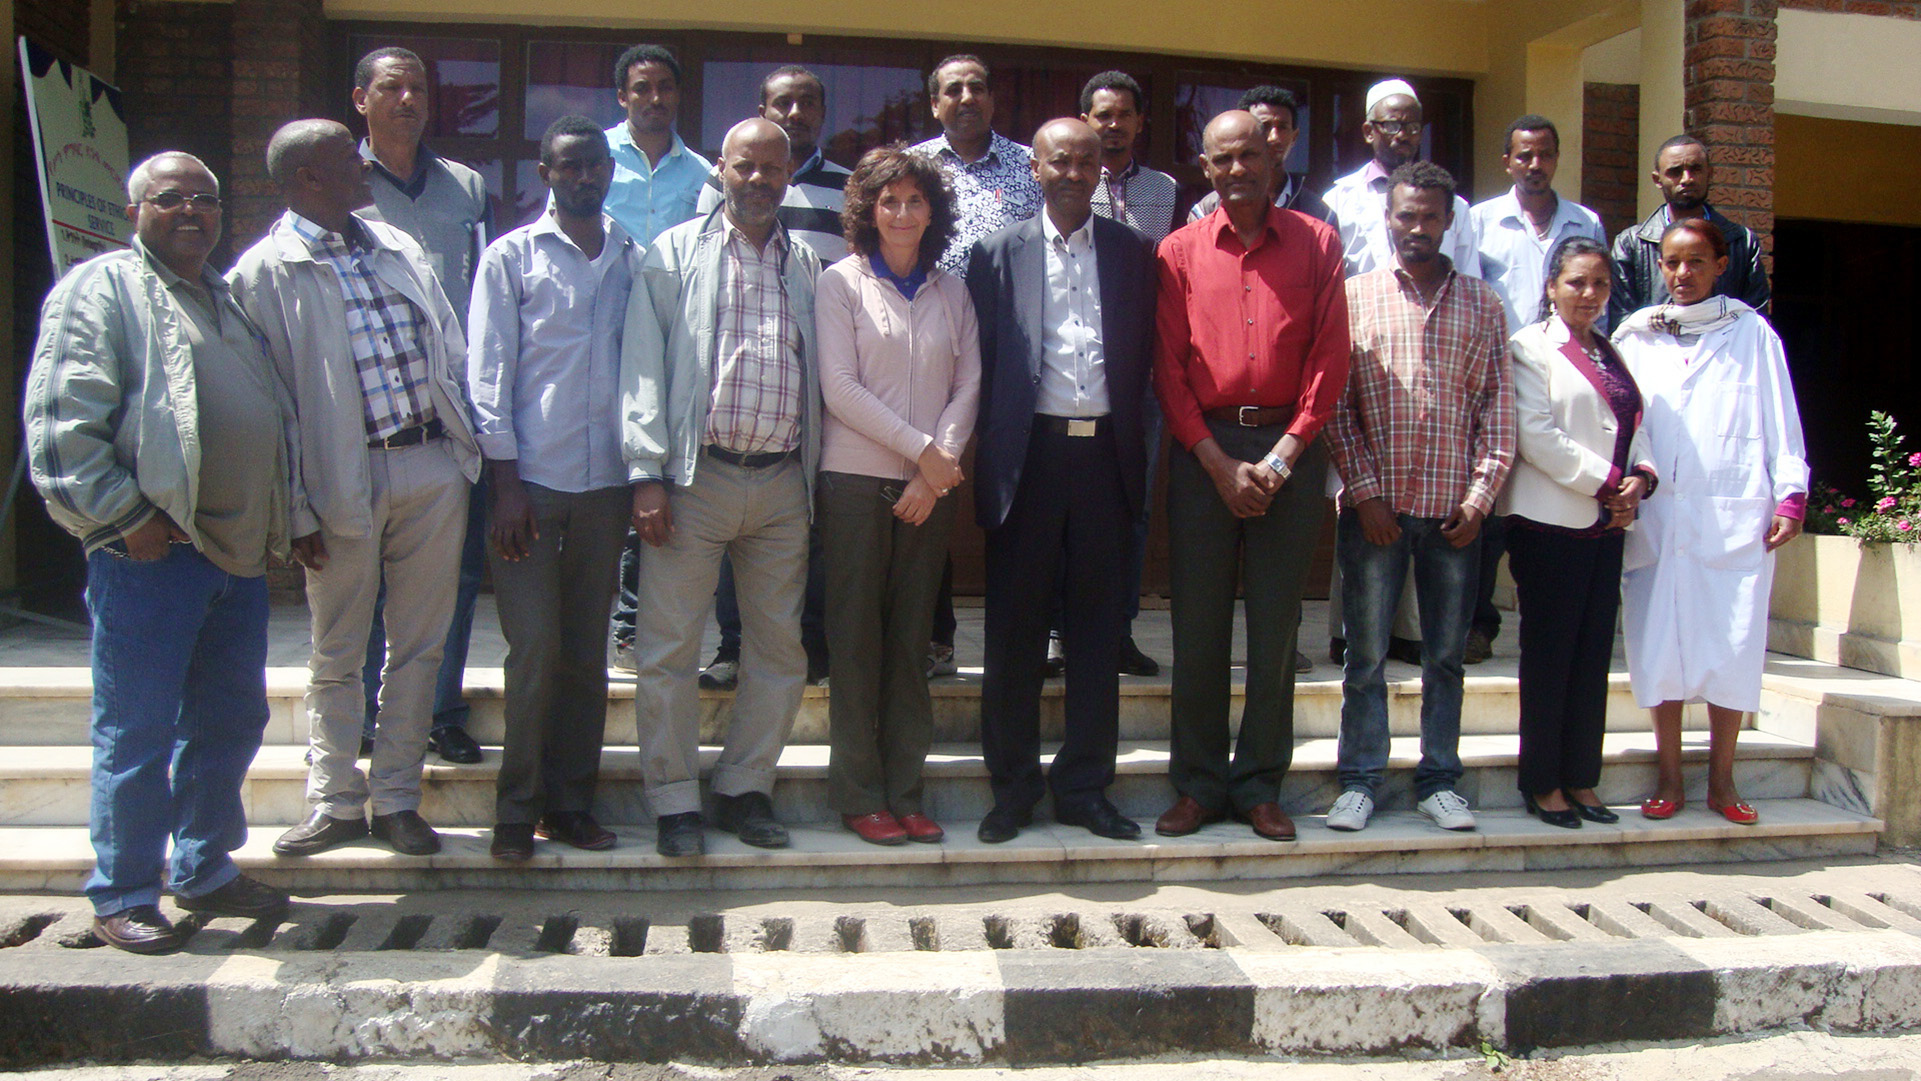 Training participants at Holetta Agricultural Research Center, Ethiopia. Photo courtesy of Bekele Abeyo